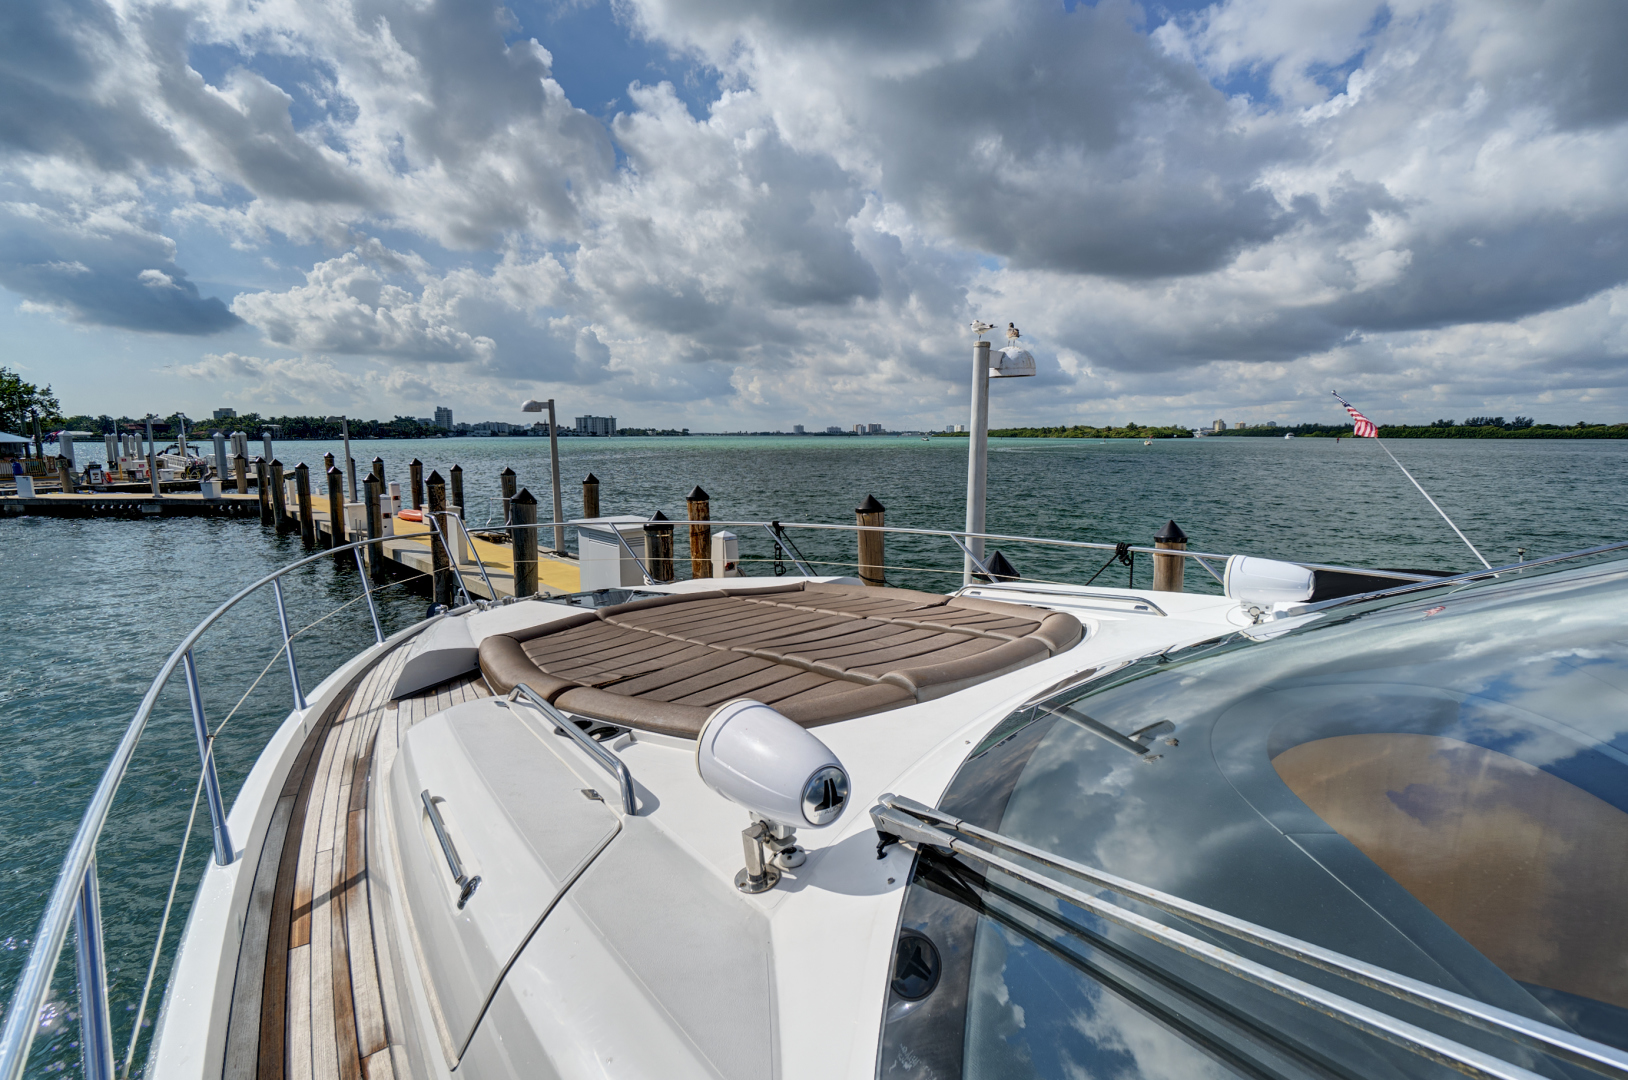 Sunseeker-68 Sport Yacht 2014-New Page Miami Beach-Florida-United States-1581180 | Thumbnail